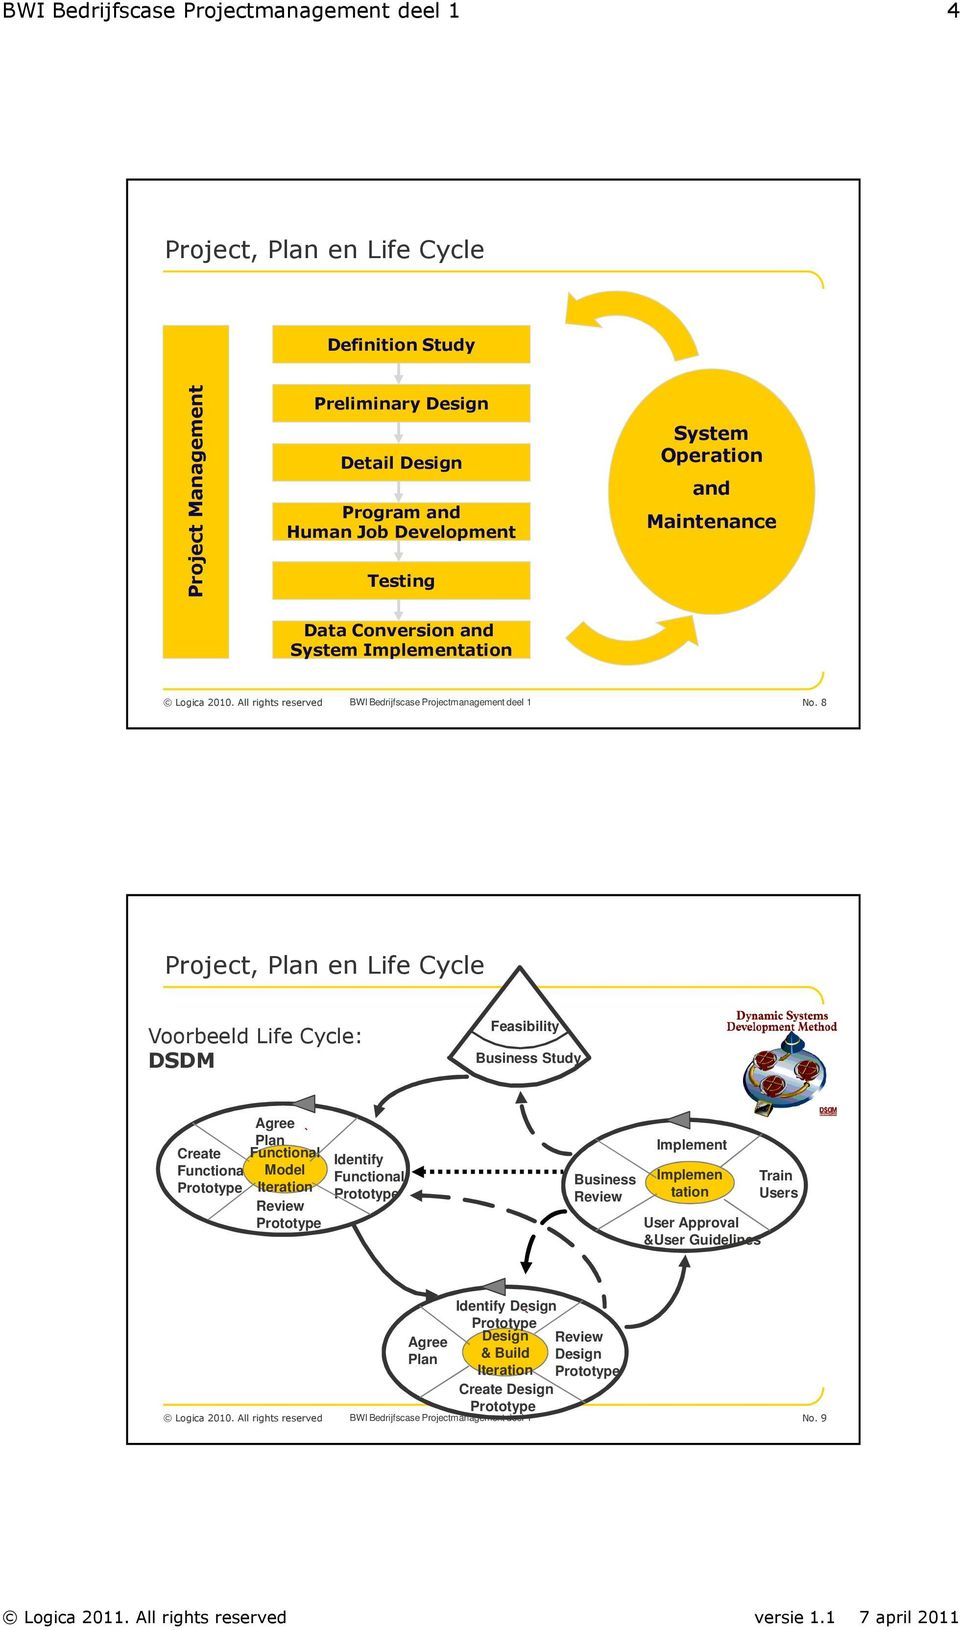 8 Project, Plan en Life Cycle Voorbeeld Life Cycle: DSDM Feasibility Business Study Agree Plan Create Functional Functional Model Prototype Iteration